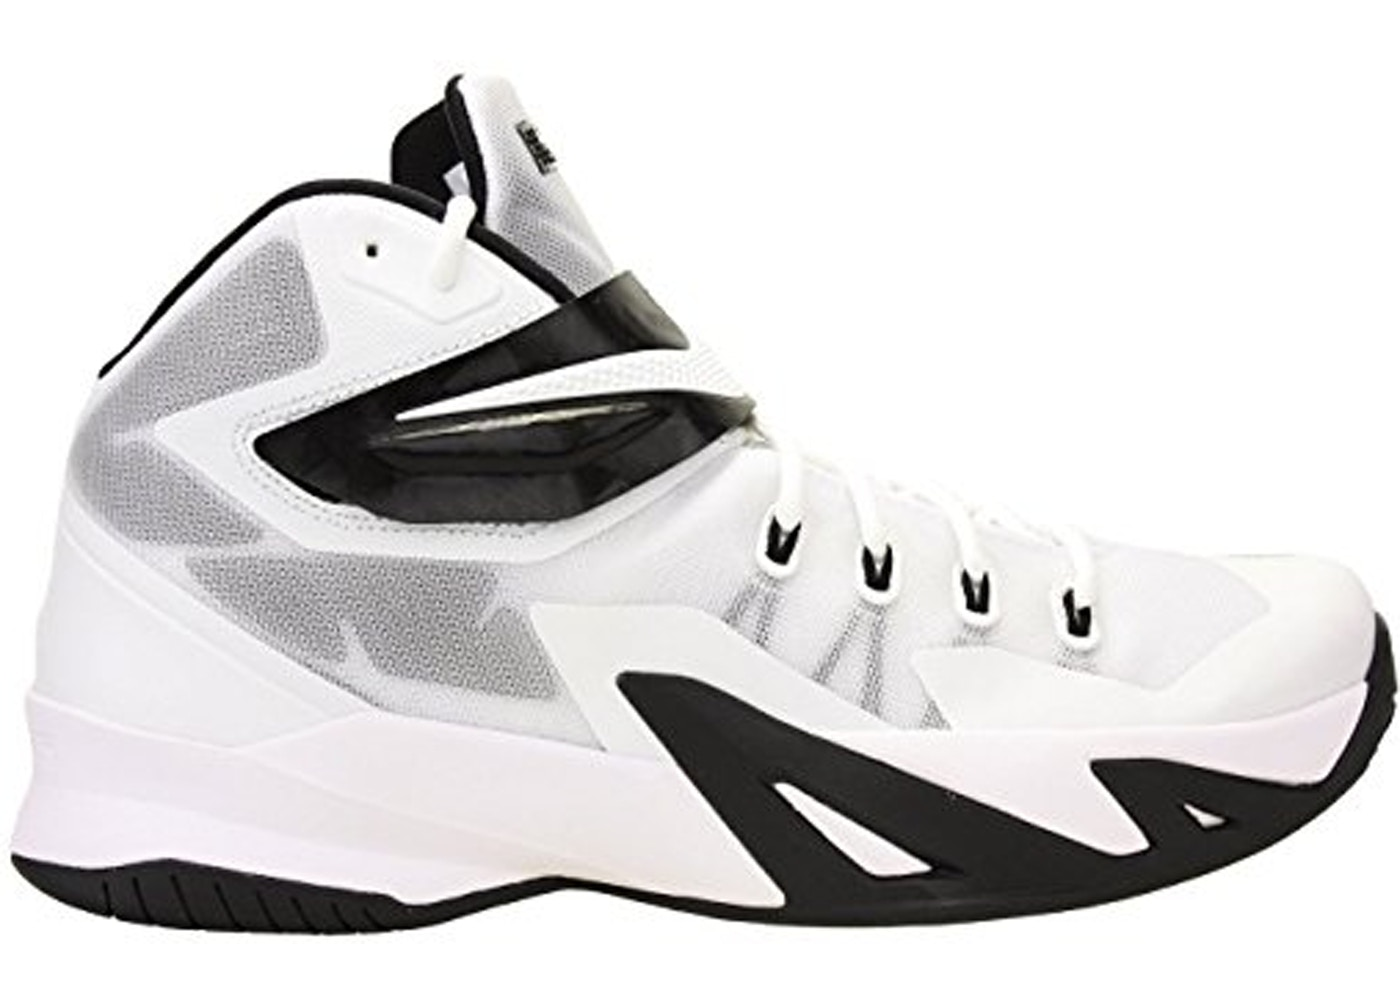 new product 04df8 9f931 Nike LeBron Zoom Soldier 8 TB White Black - 653648-100